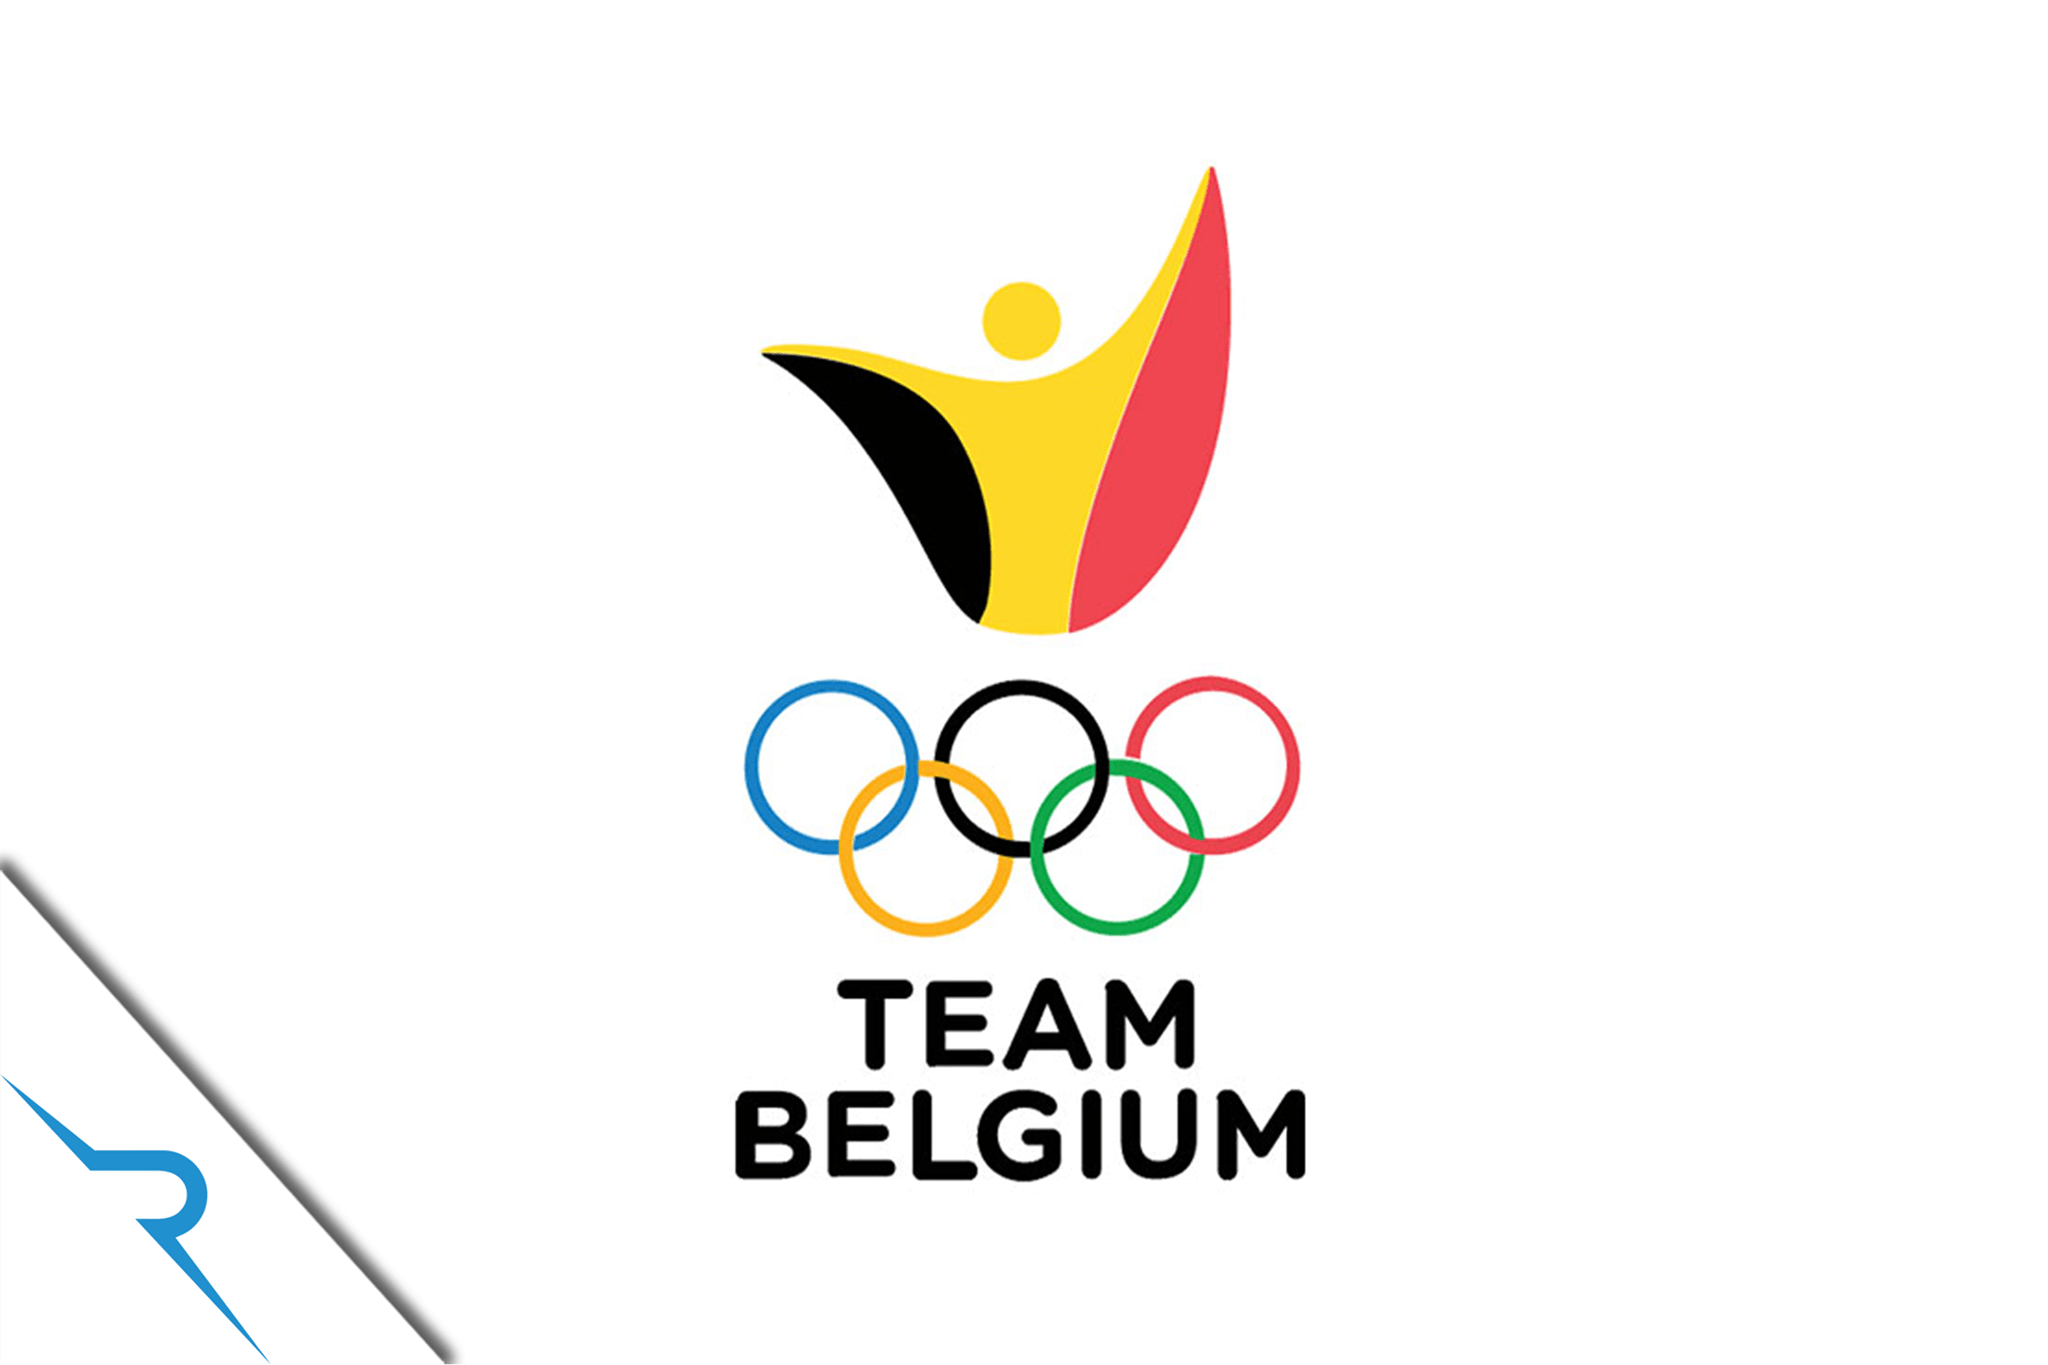 Successfully represented the Belgian Olympic Committee